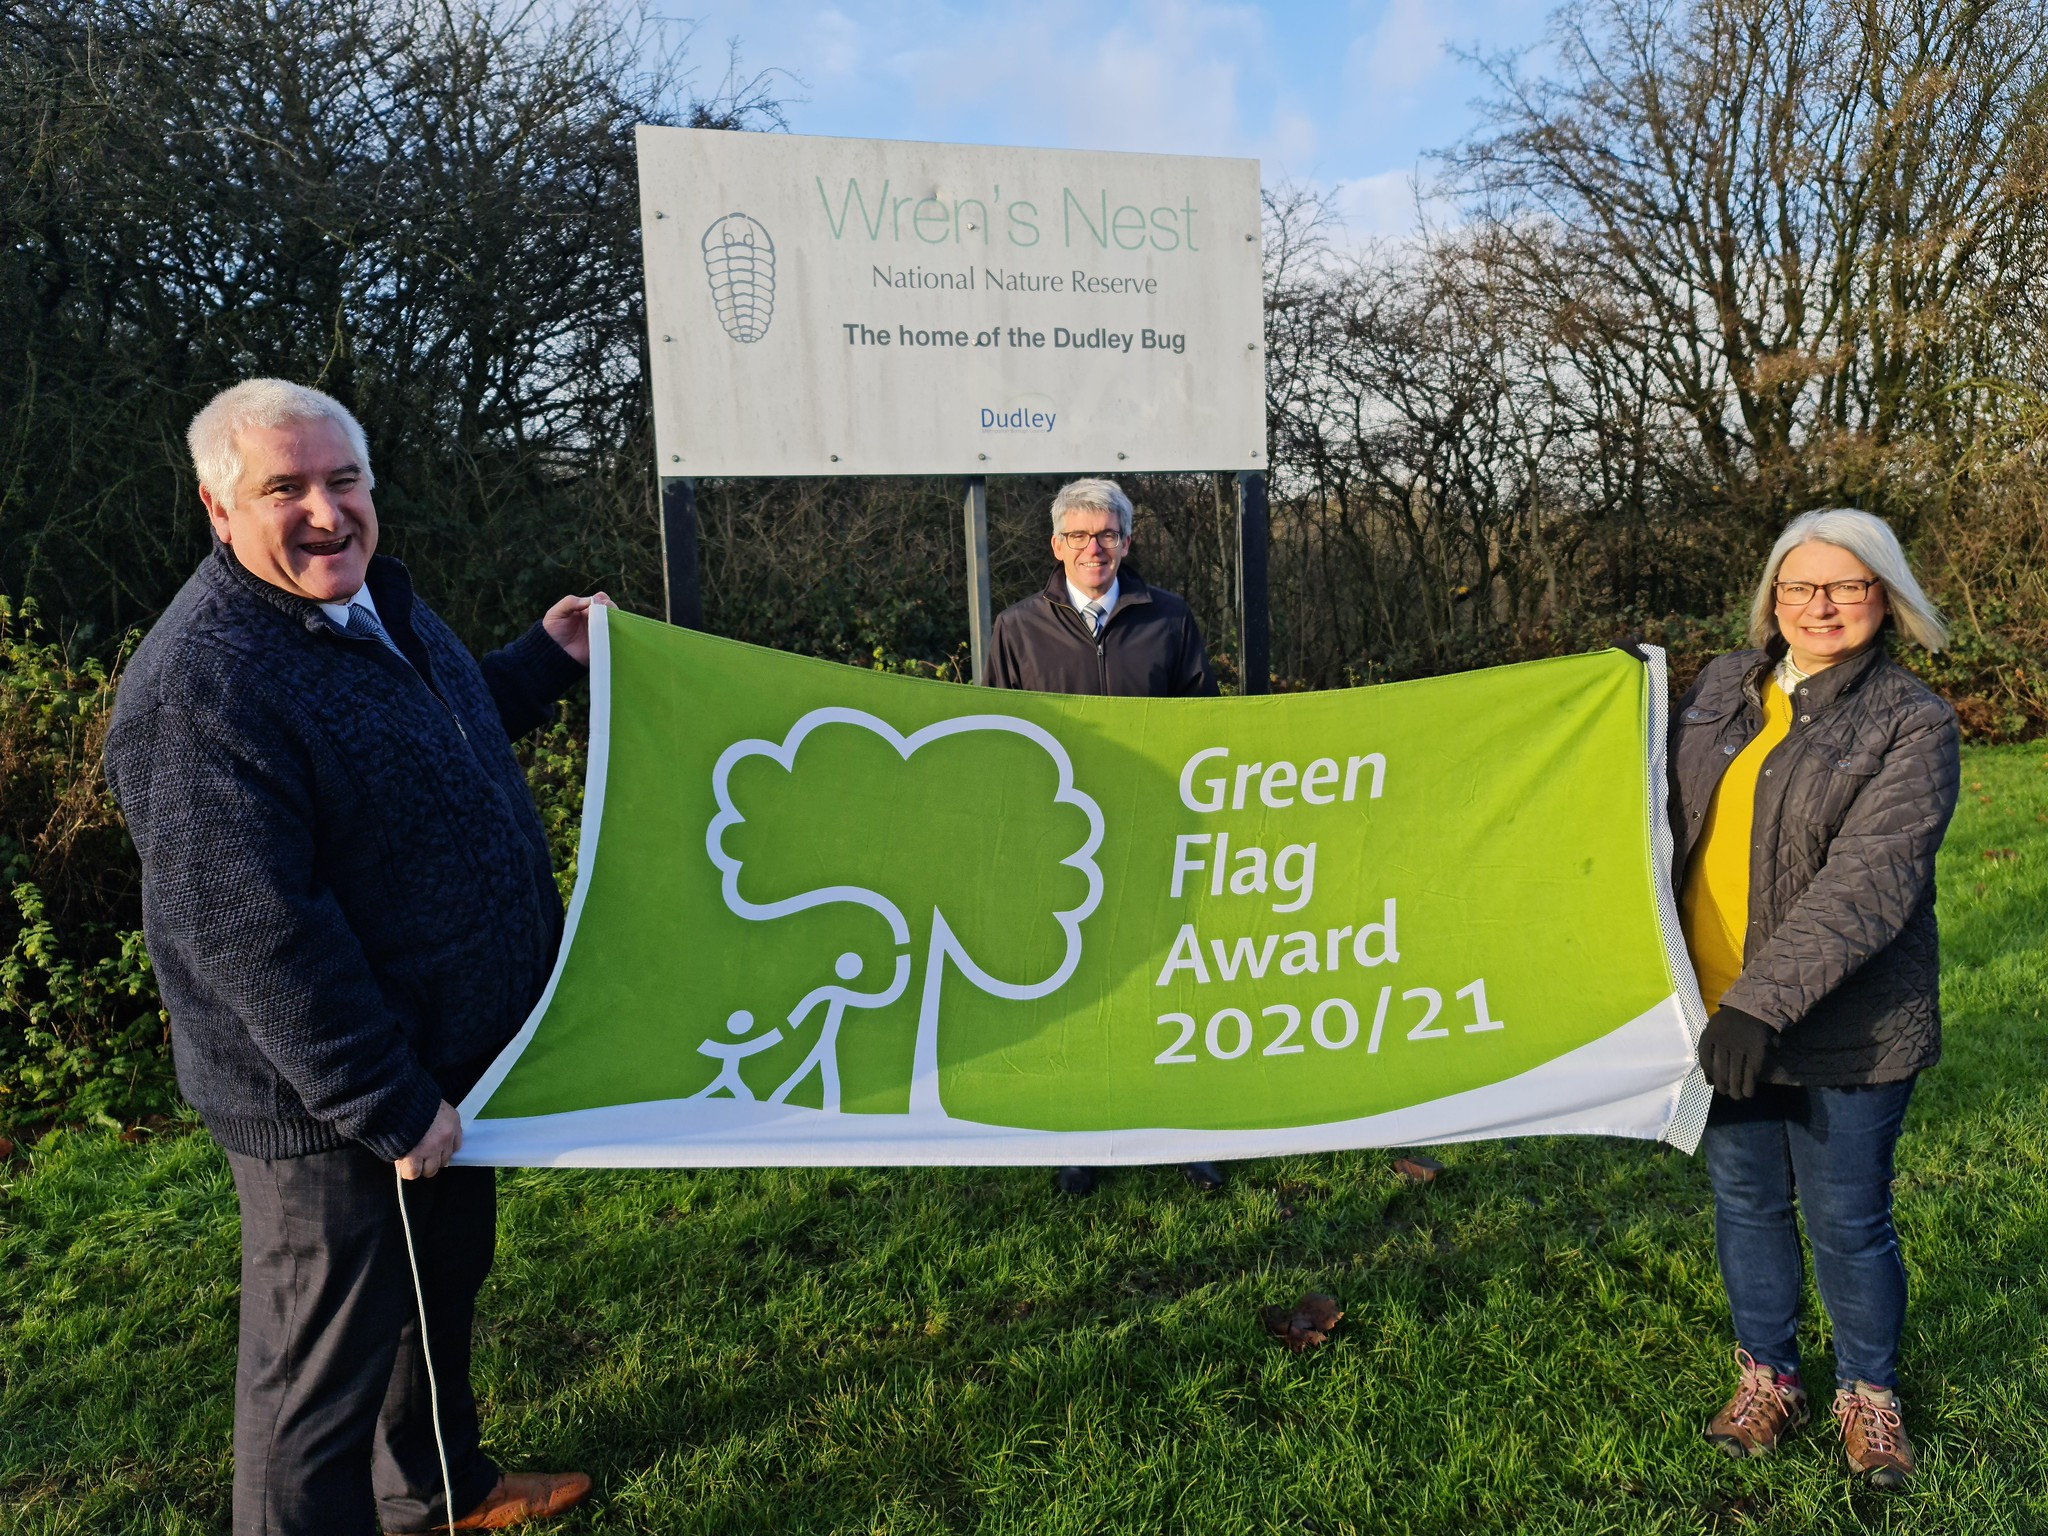 Volunteers hailed for role in Wrens Nest retaining Green Flag status